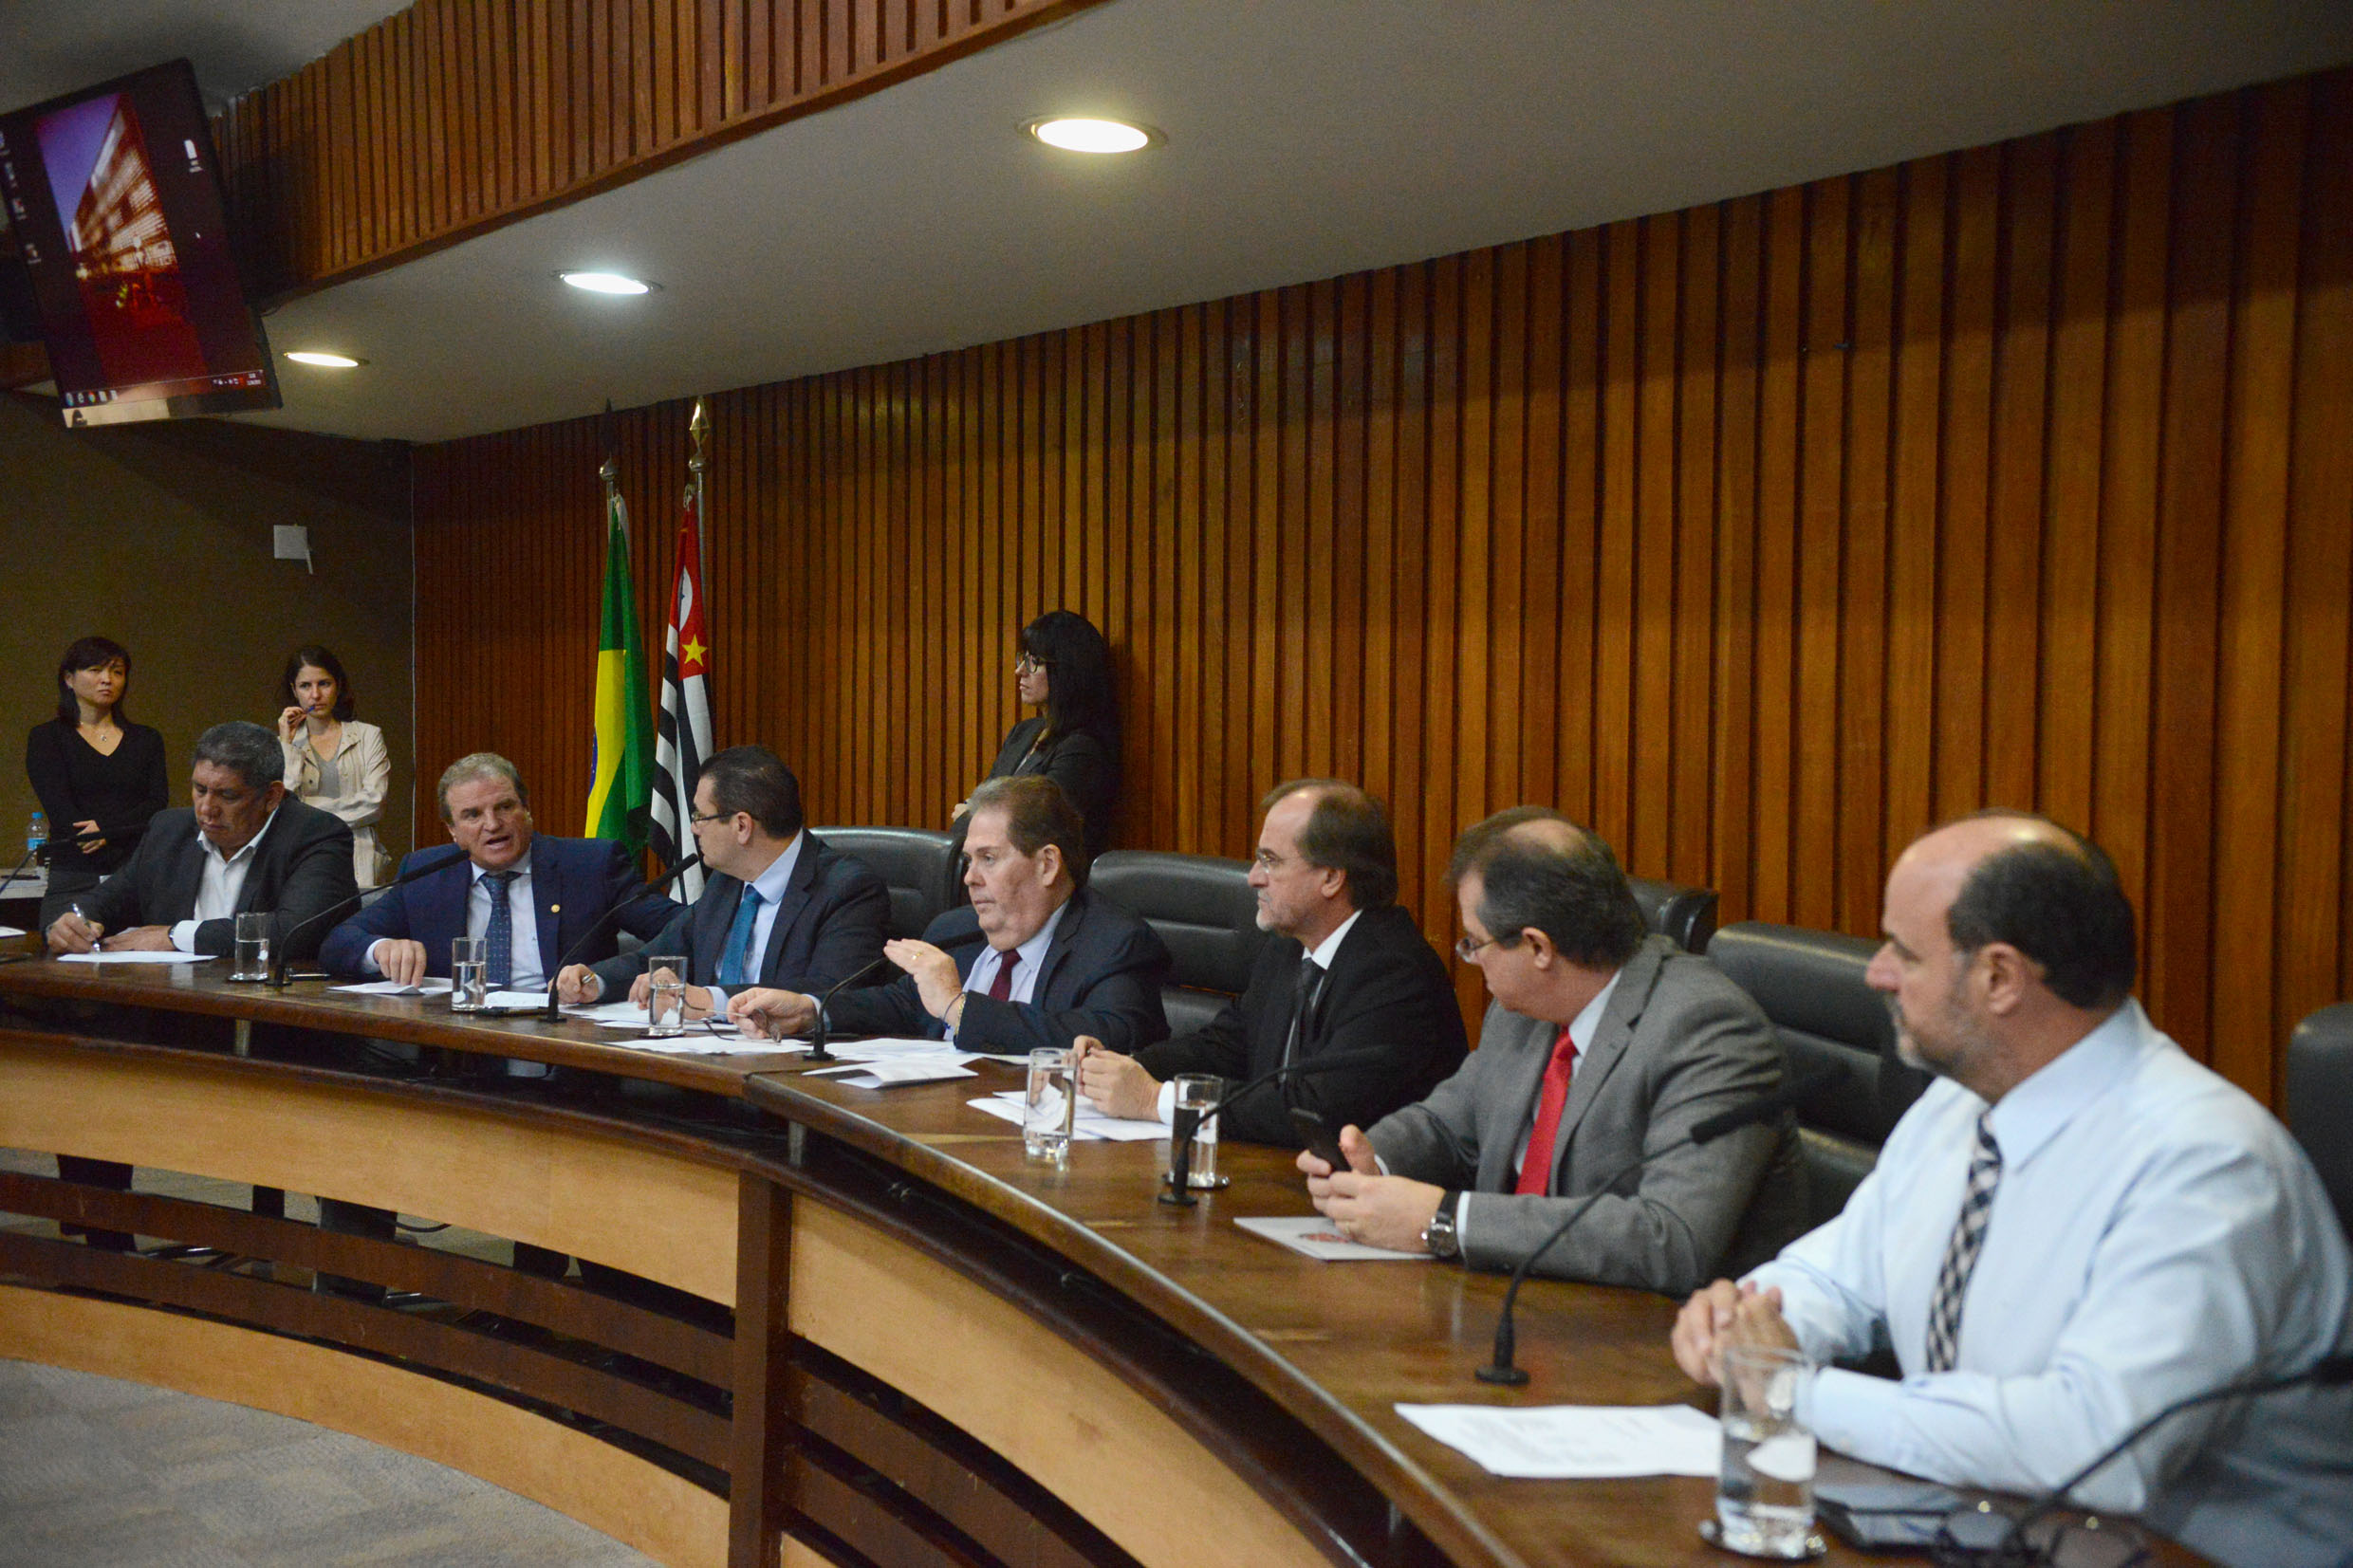 Parlamentares na CPI<a style='float:right' href='https://www3.al.sp.gov.br/repositorio/noticia/N-06-2019/fg235639.jpg' target=_blank><img src='/_img/material-file-download-white.png' width='14px' alt='Clique para baixar a imagem'></a>